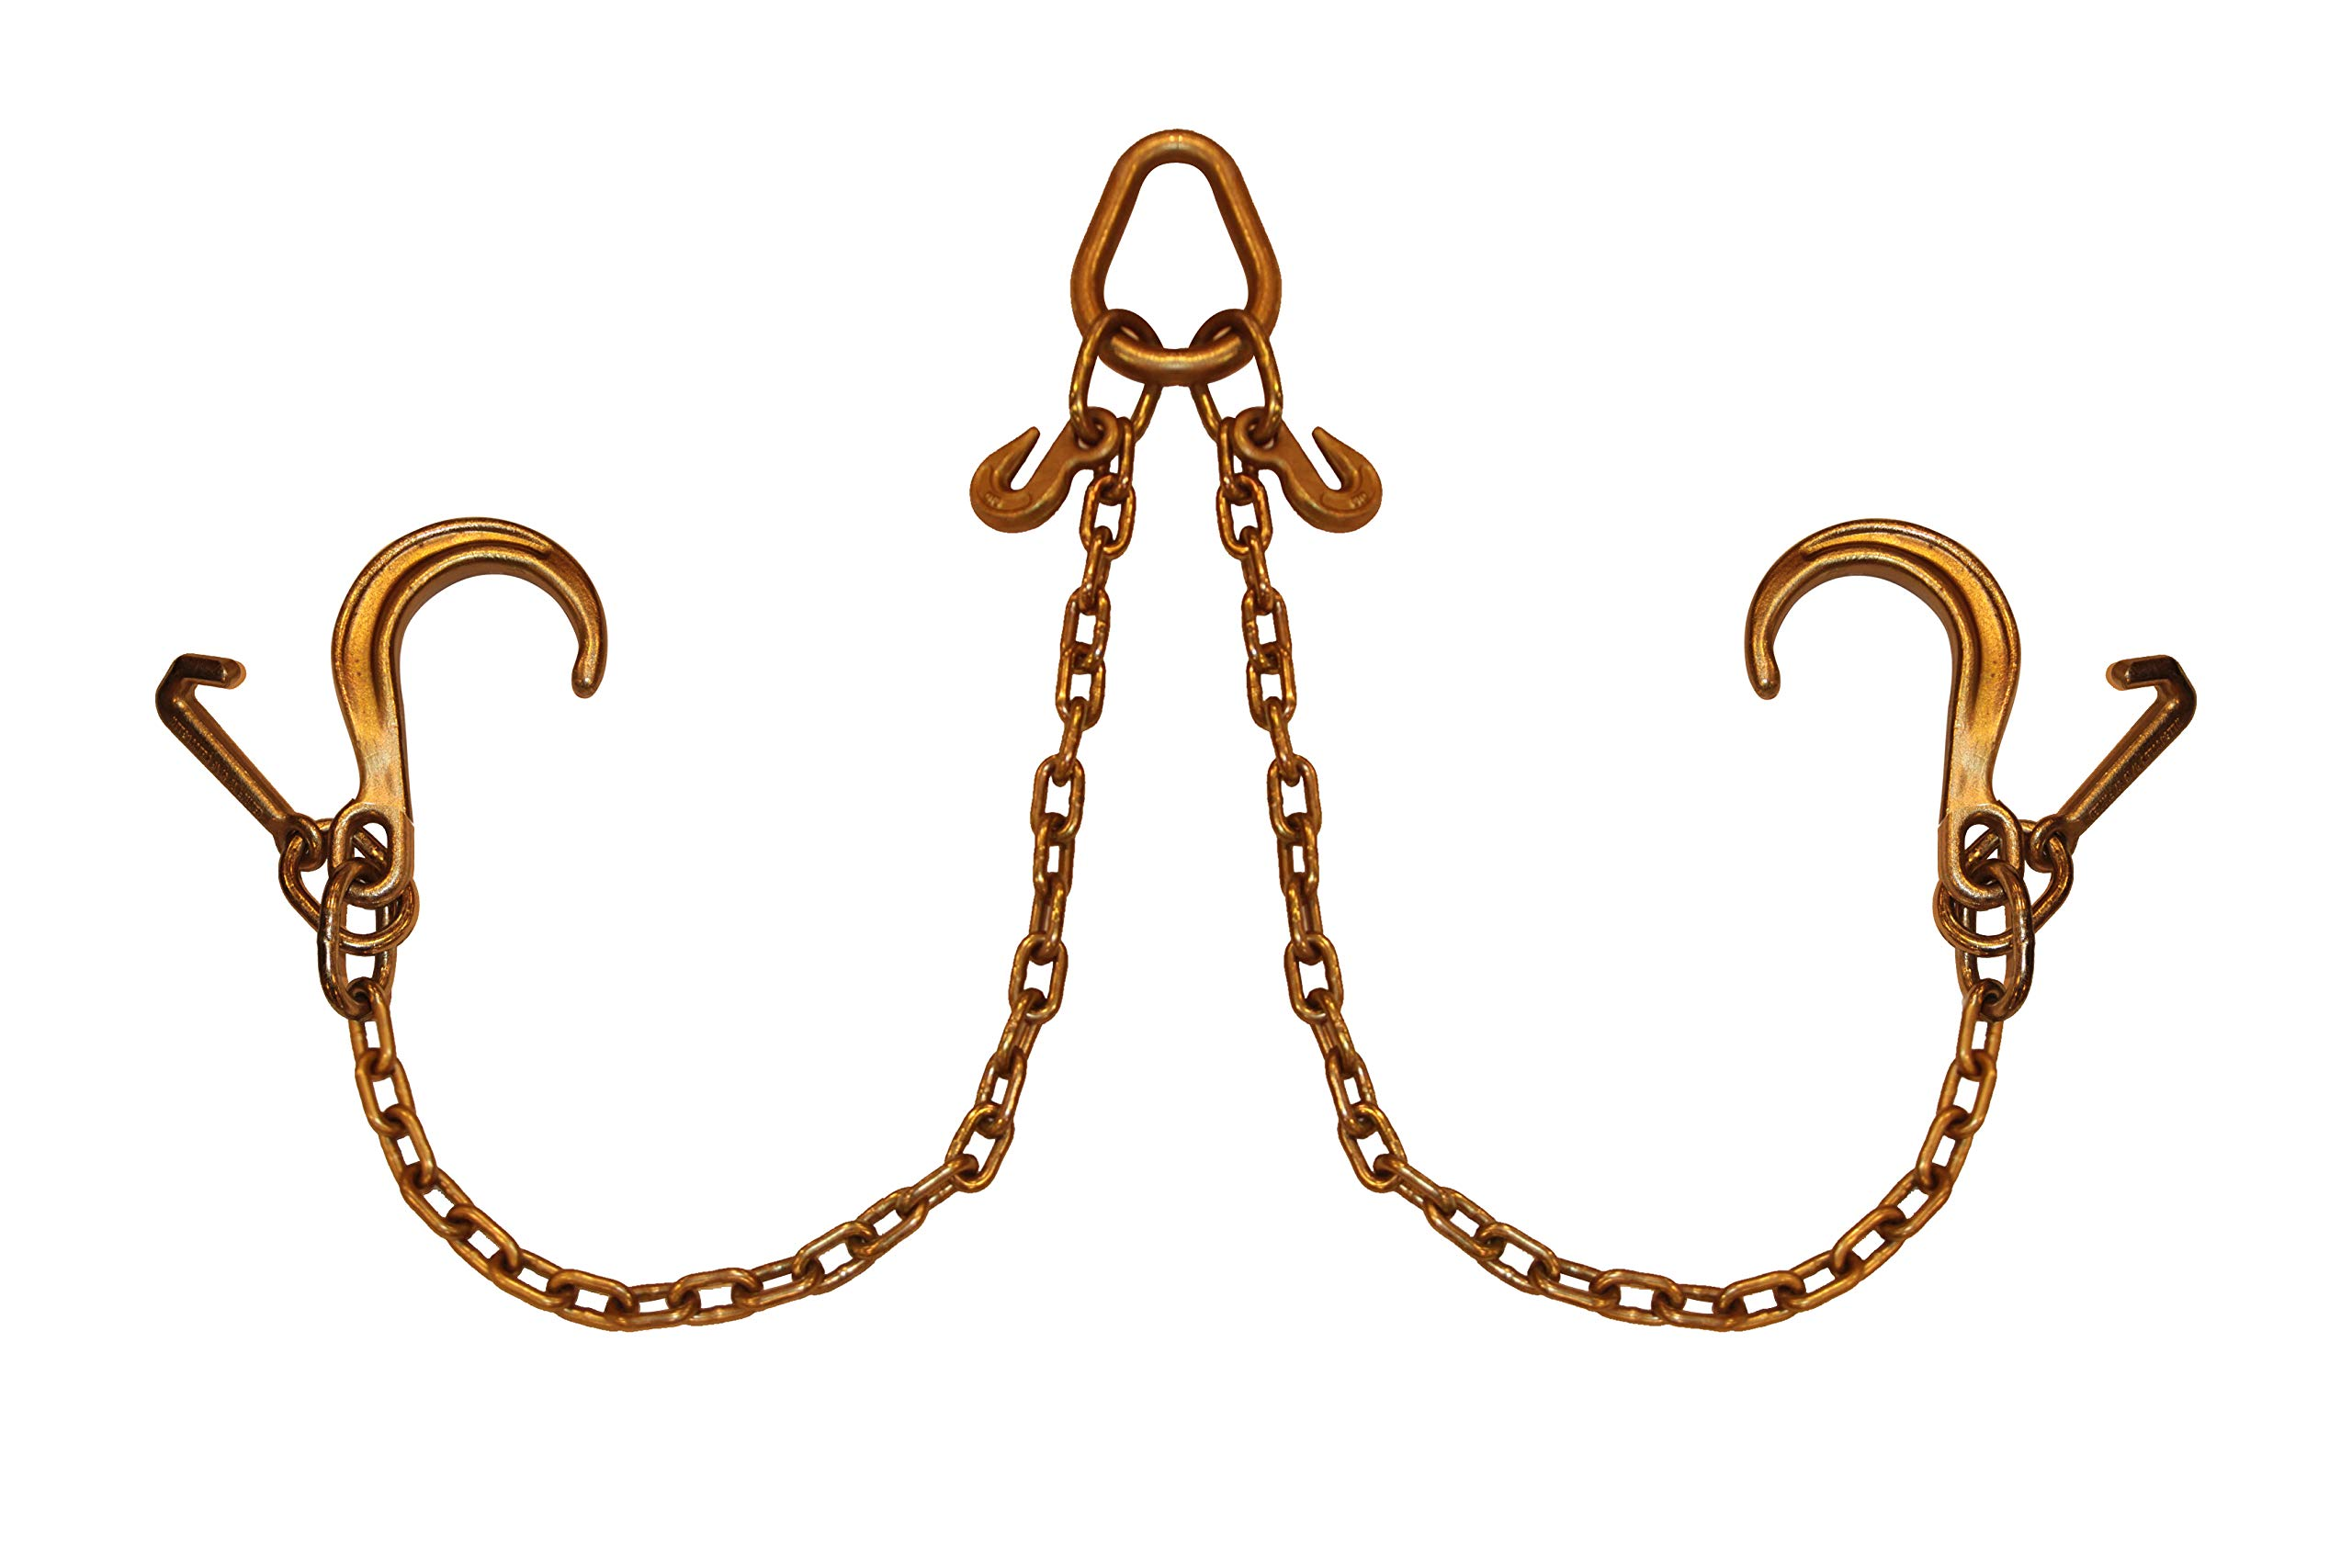 5/16'' Grade 70 V-Chain Bridle x 3 FT Legs 8'' J-Hook with Mini J Towing Cargo Control